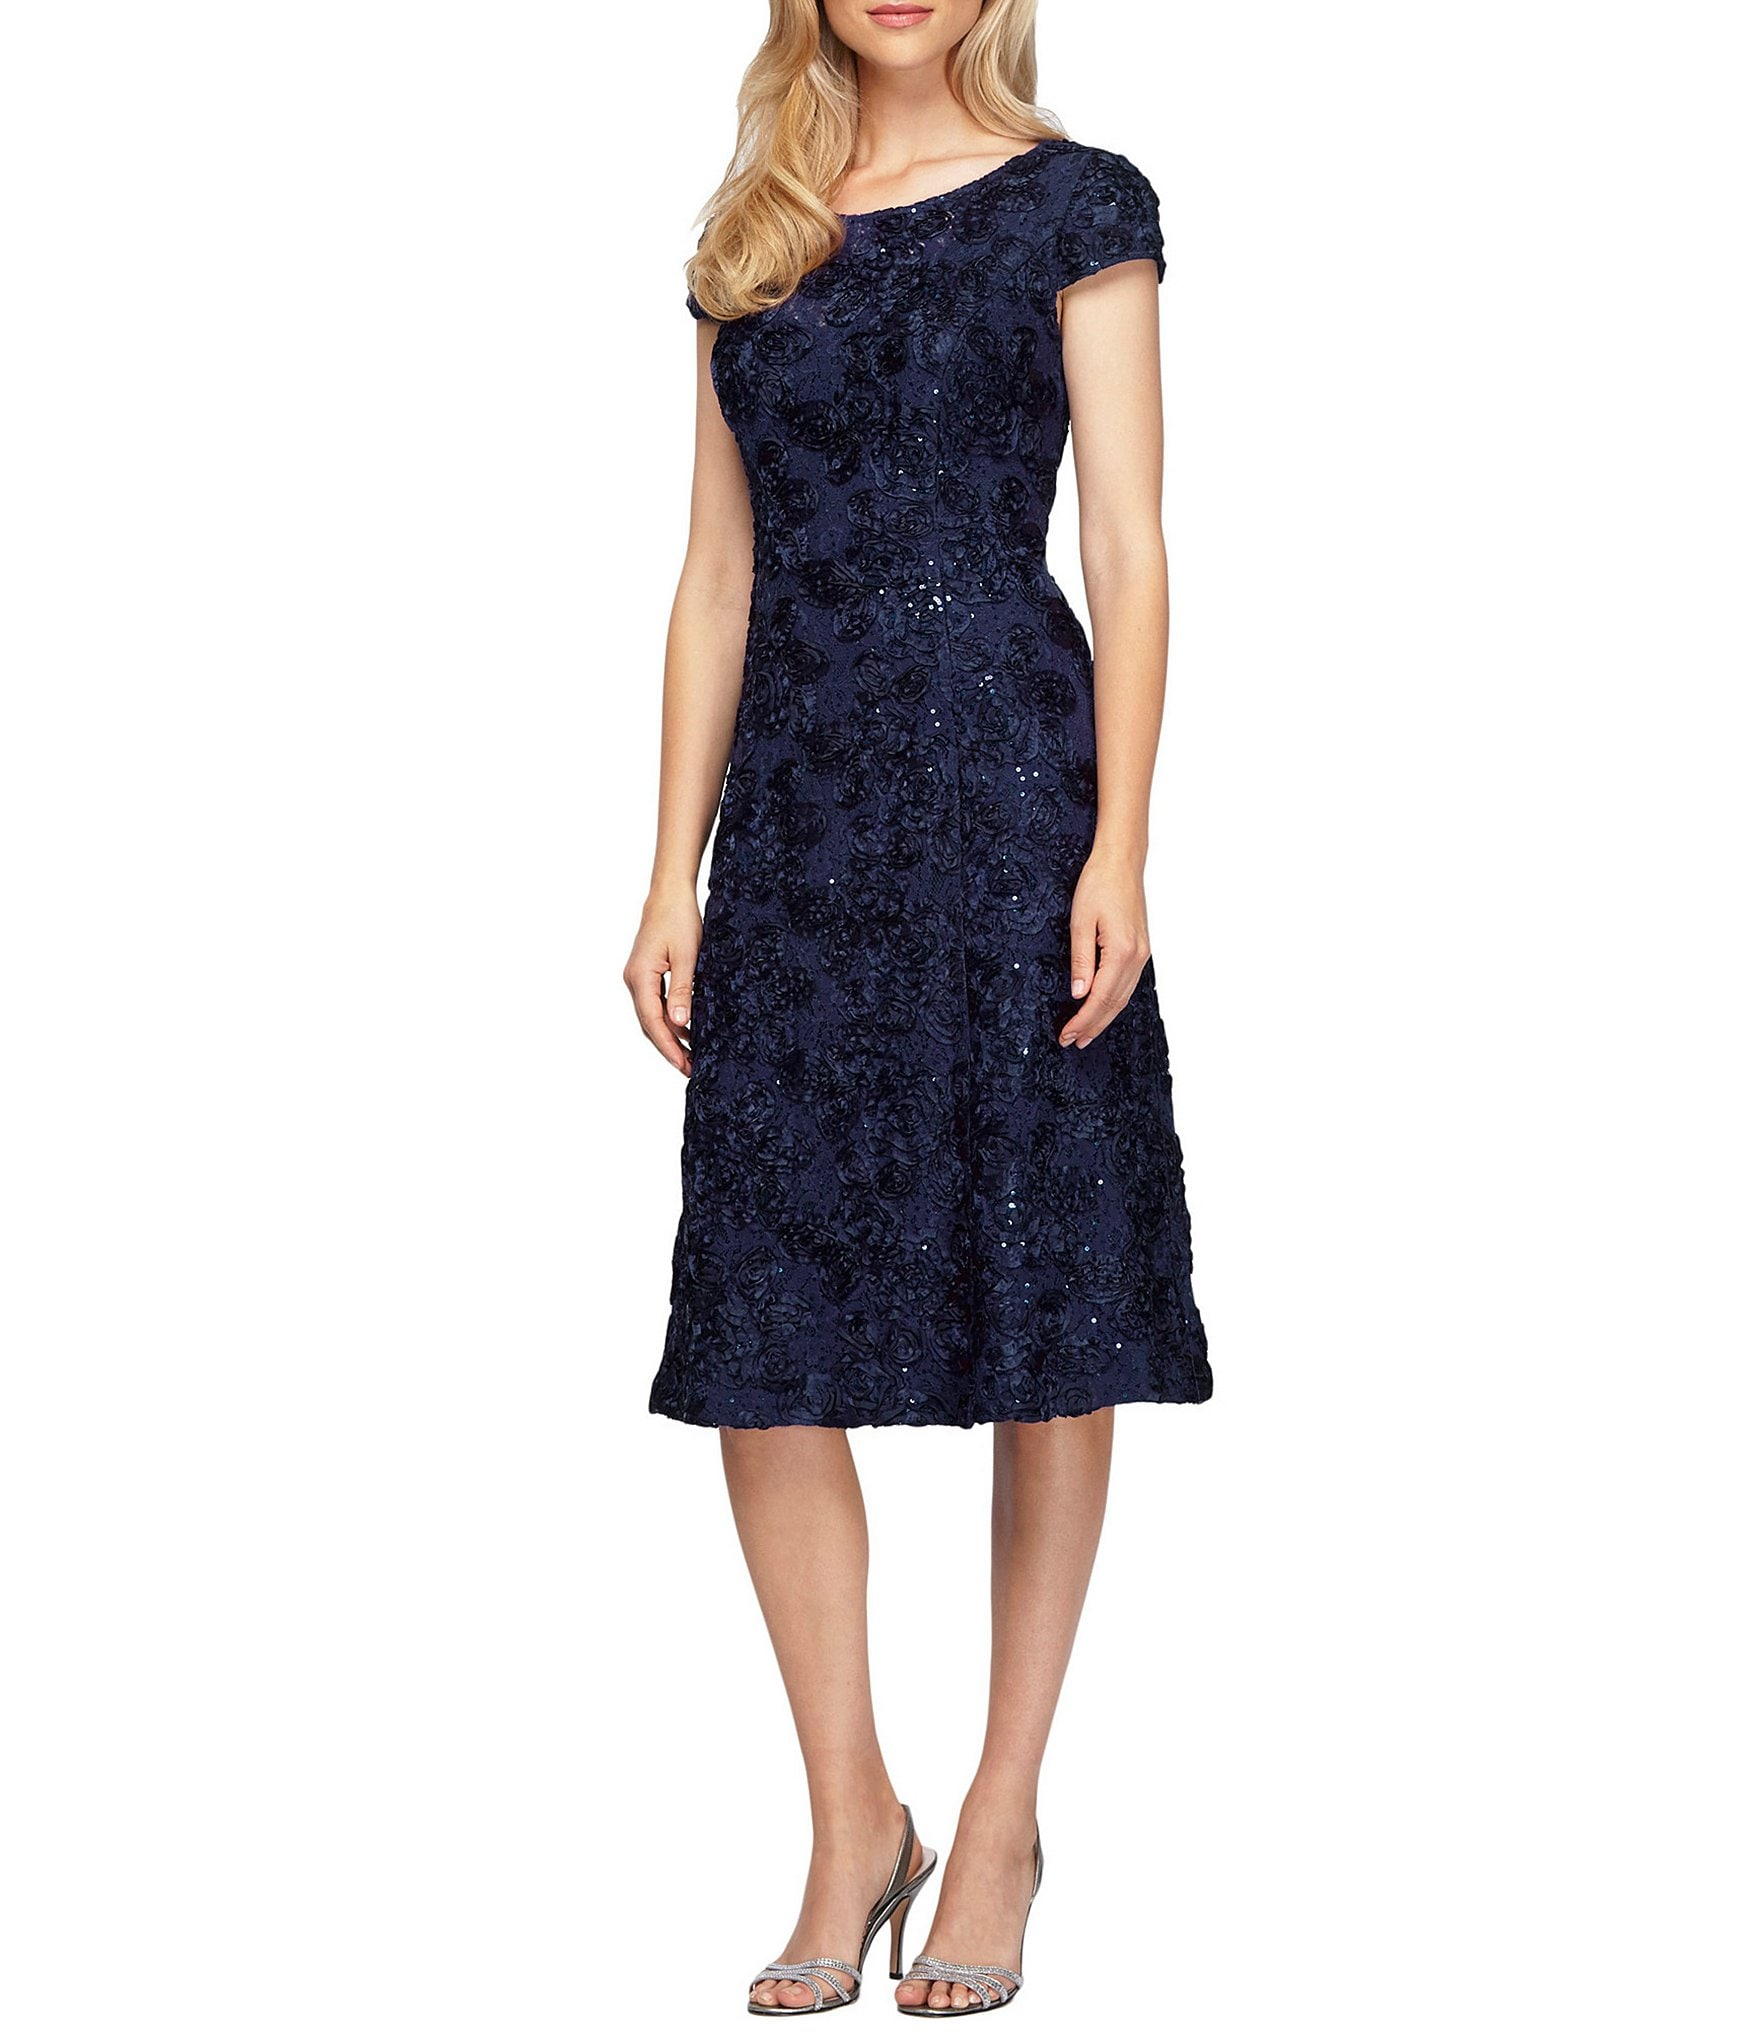 eb25517b52f84 Mother of the Bride Dresses & Gowns | Dillard's